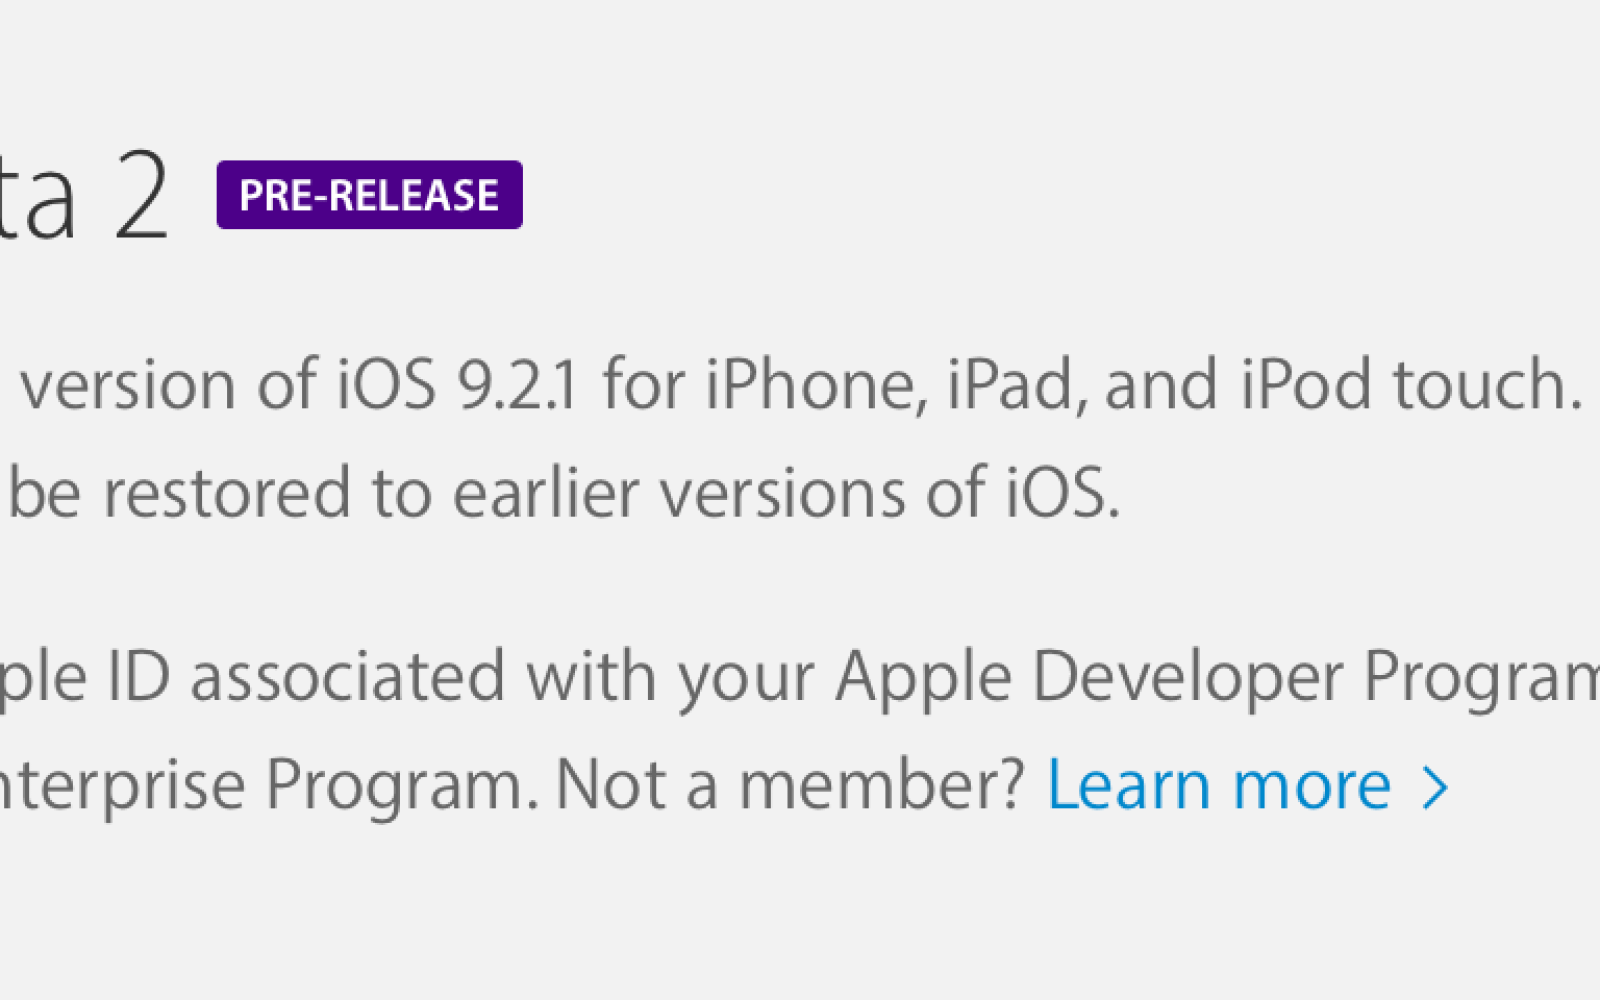 Apple releases iOS 9.2.1 beta 2 for developers and public beta testers